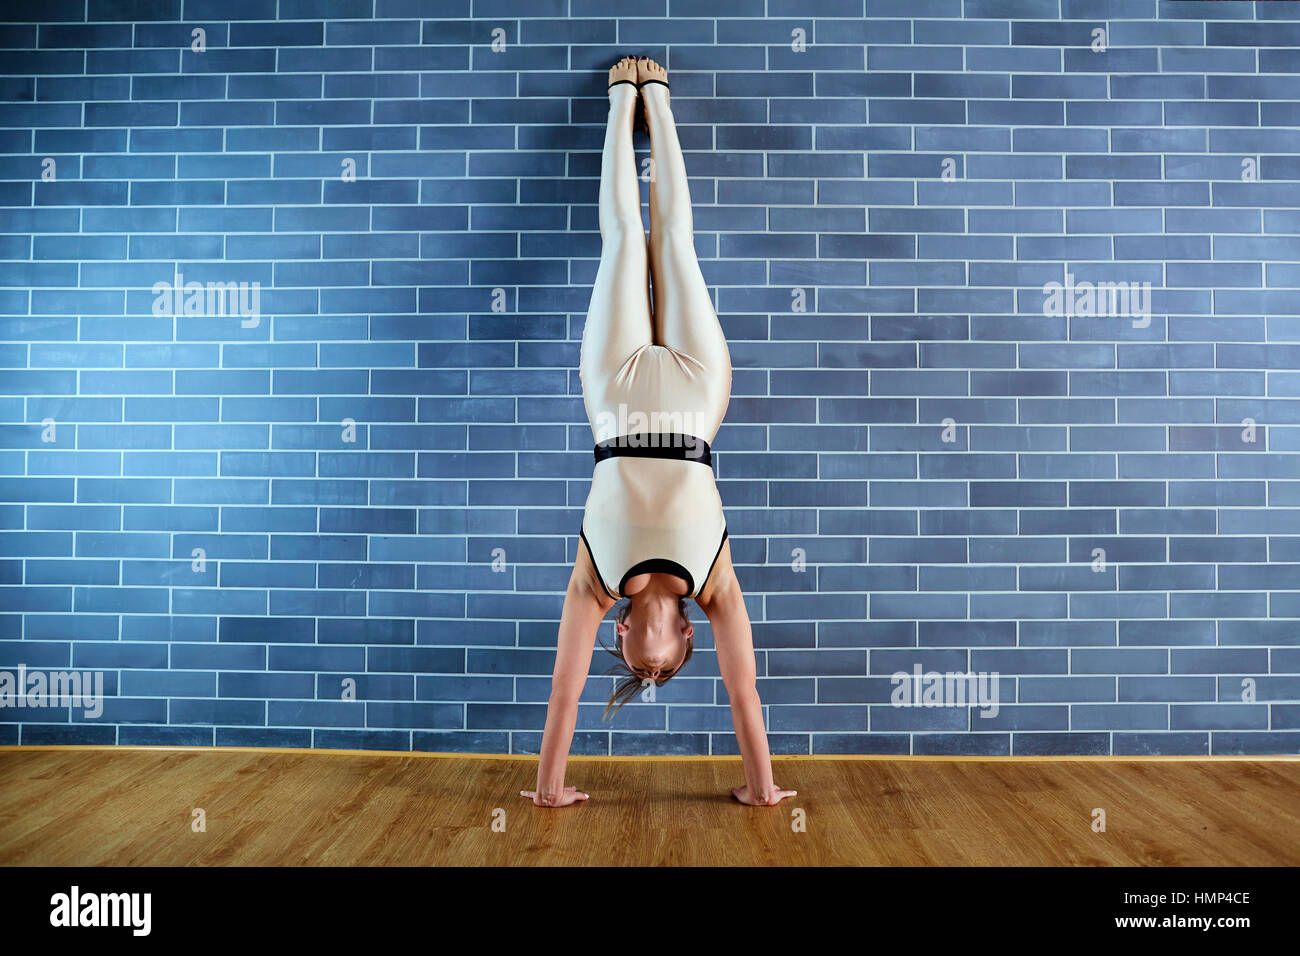 Headstand Stock Photos & Headstand Stock Images - Alamy